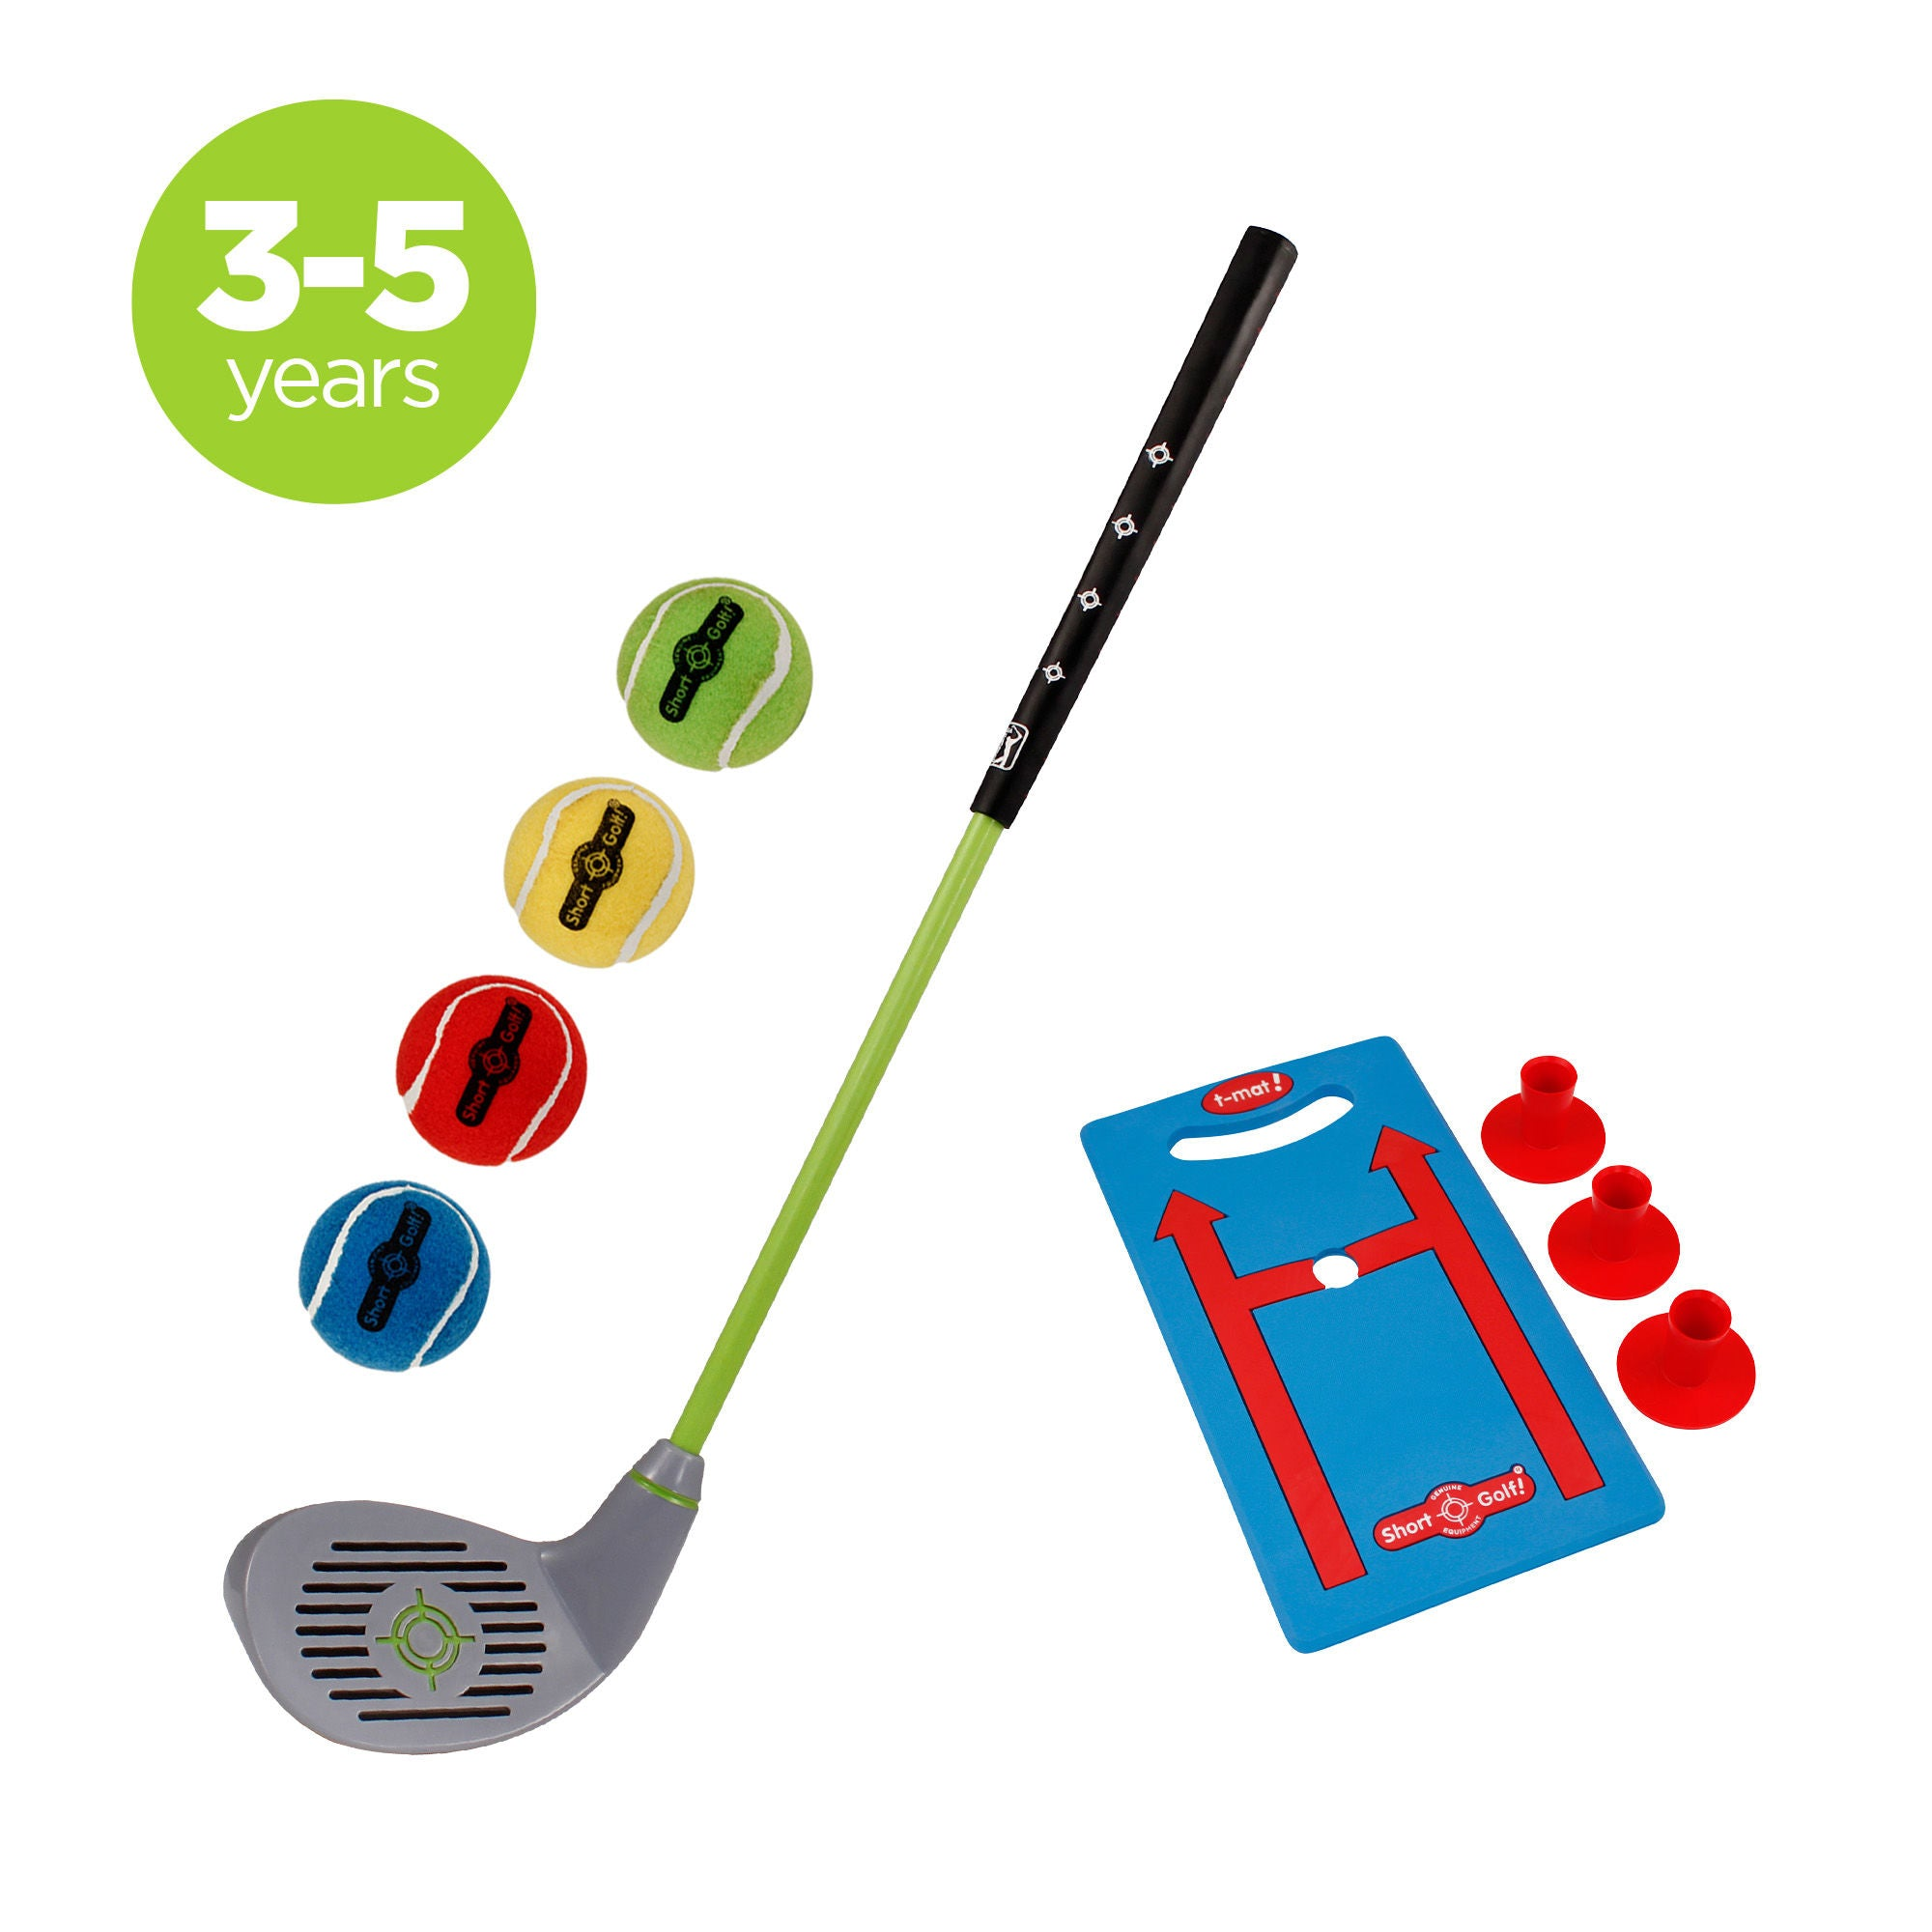 ShortGolf Family Chipping Pack - Putterfingers.com